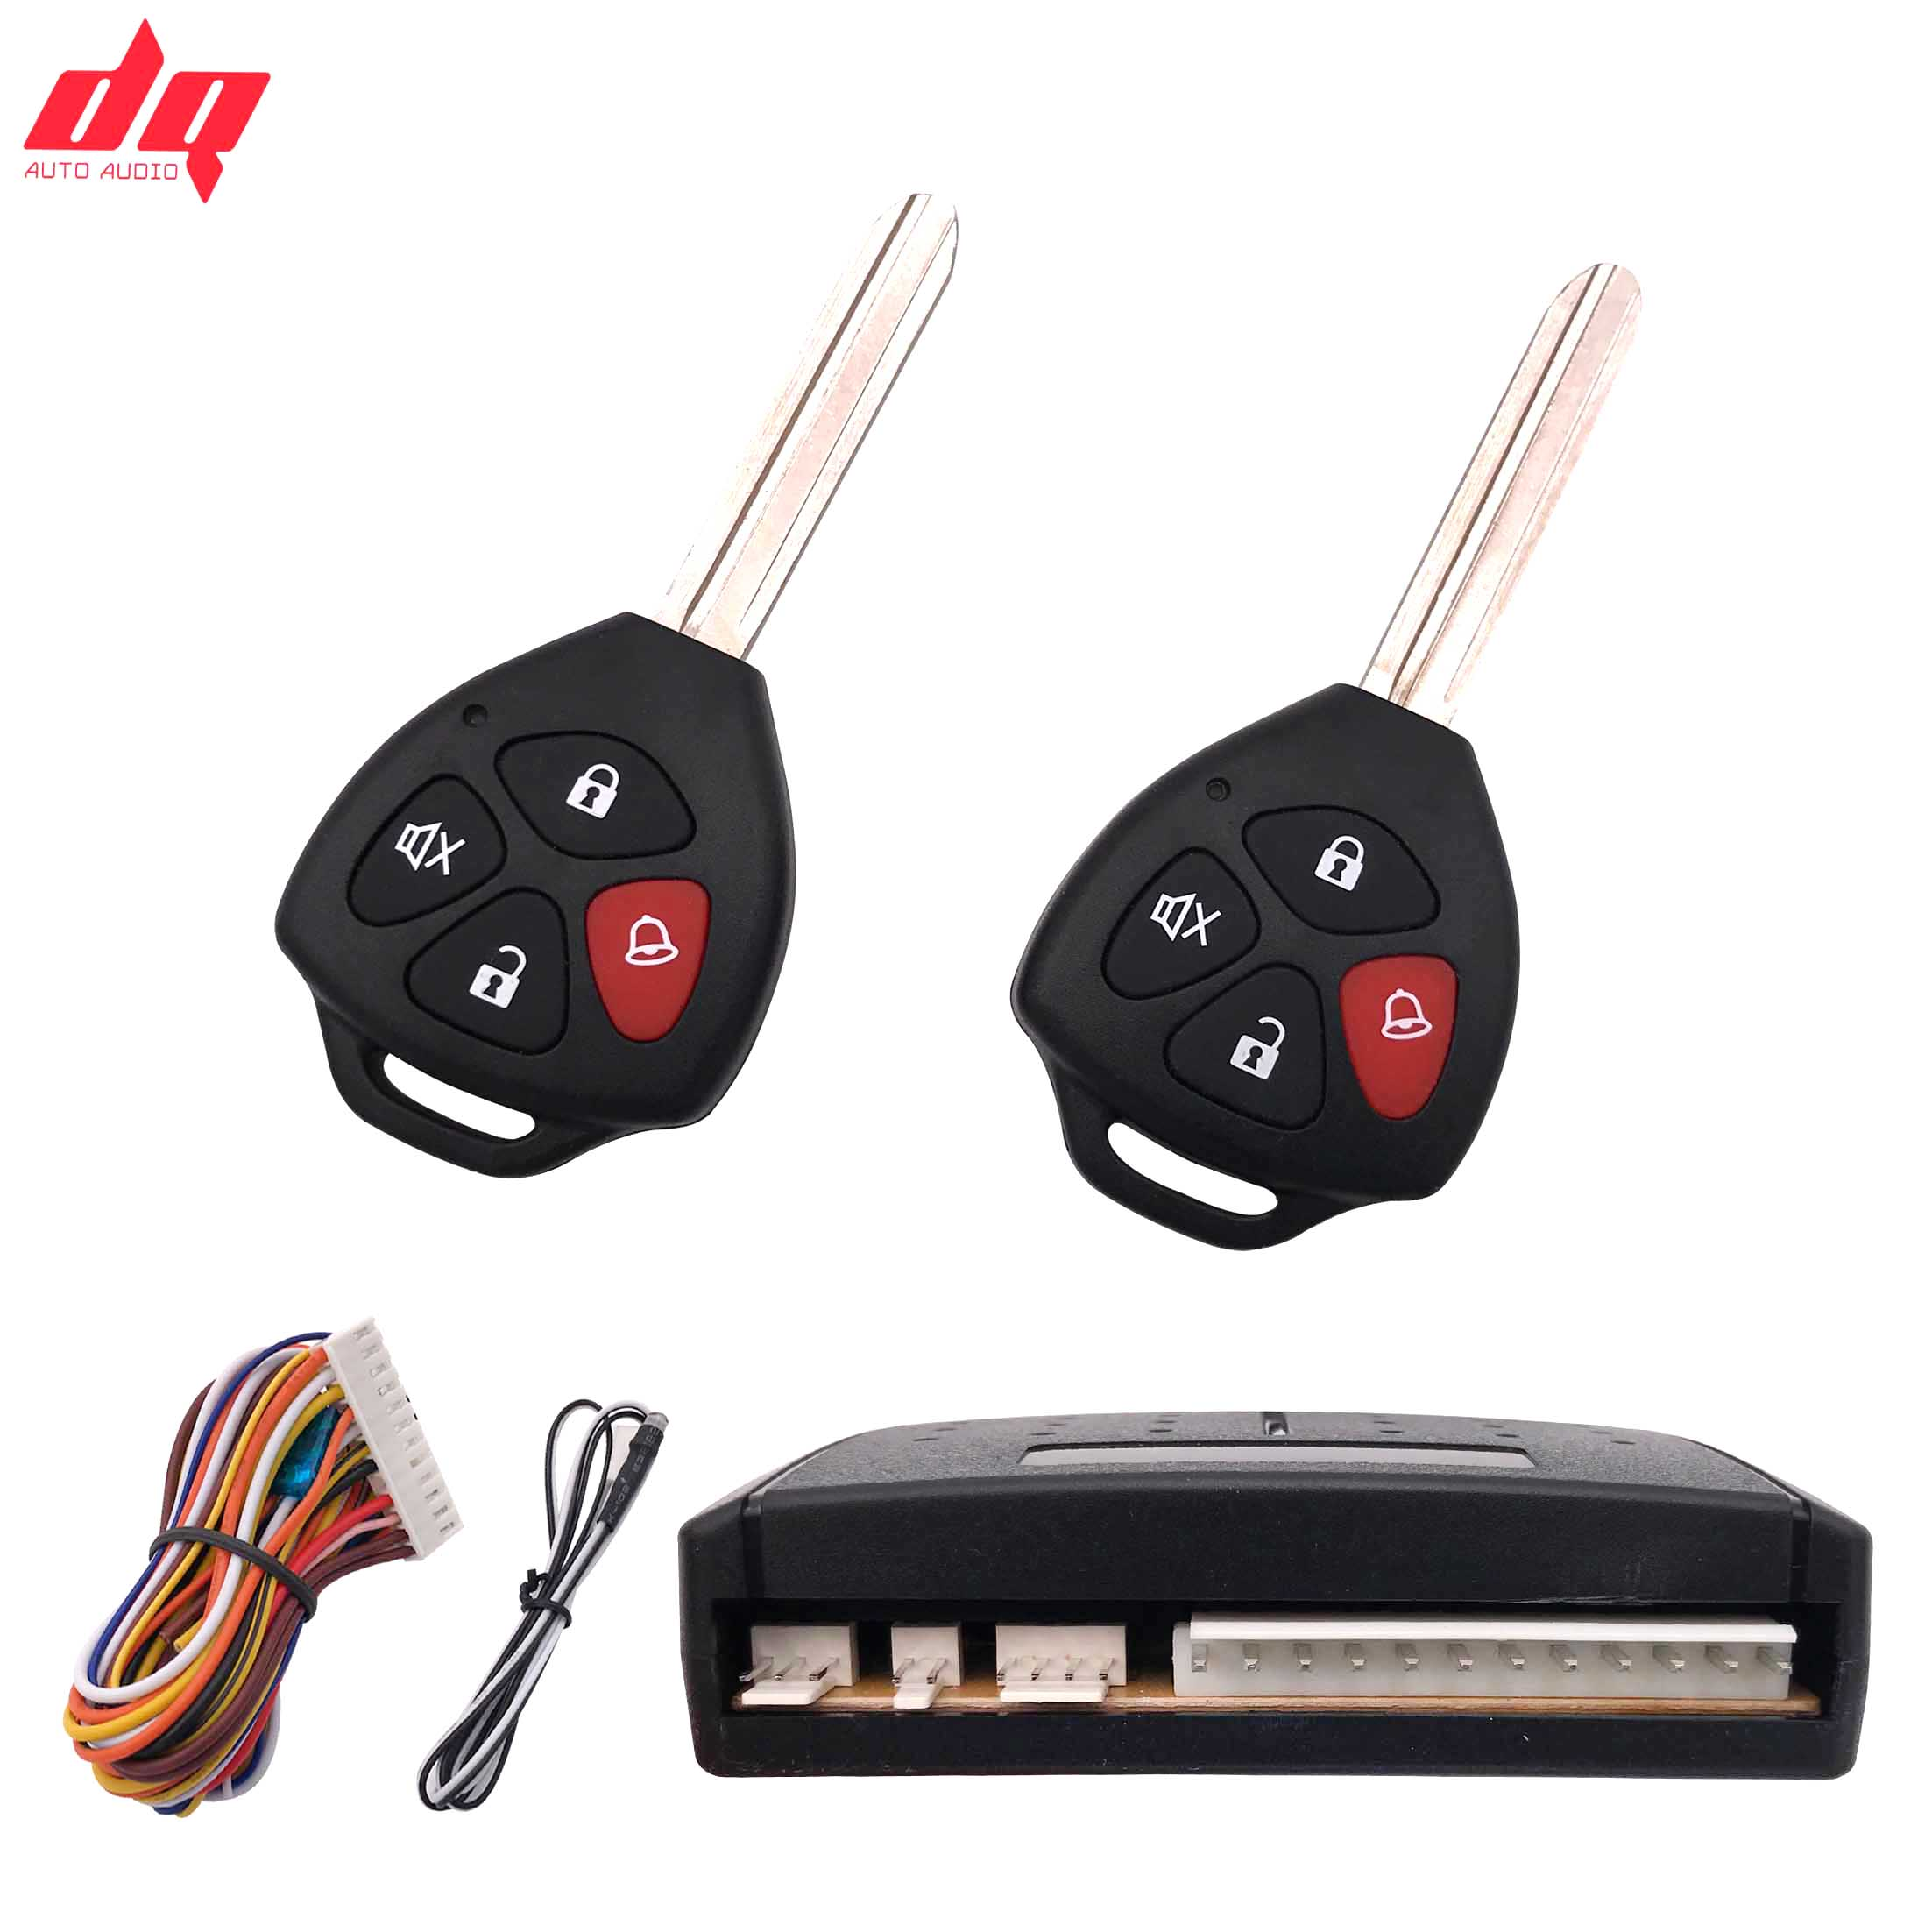 Car Alarm For Toyota 12+4 Auto Remote Central Kit Door Lock Vehicle Locking System With Key Central Locking Remote Control